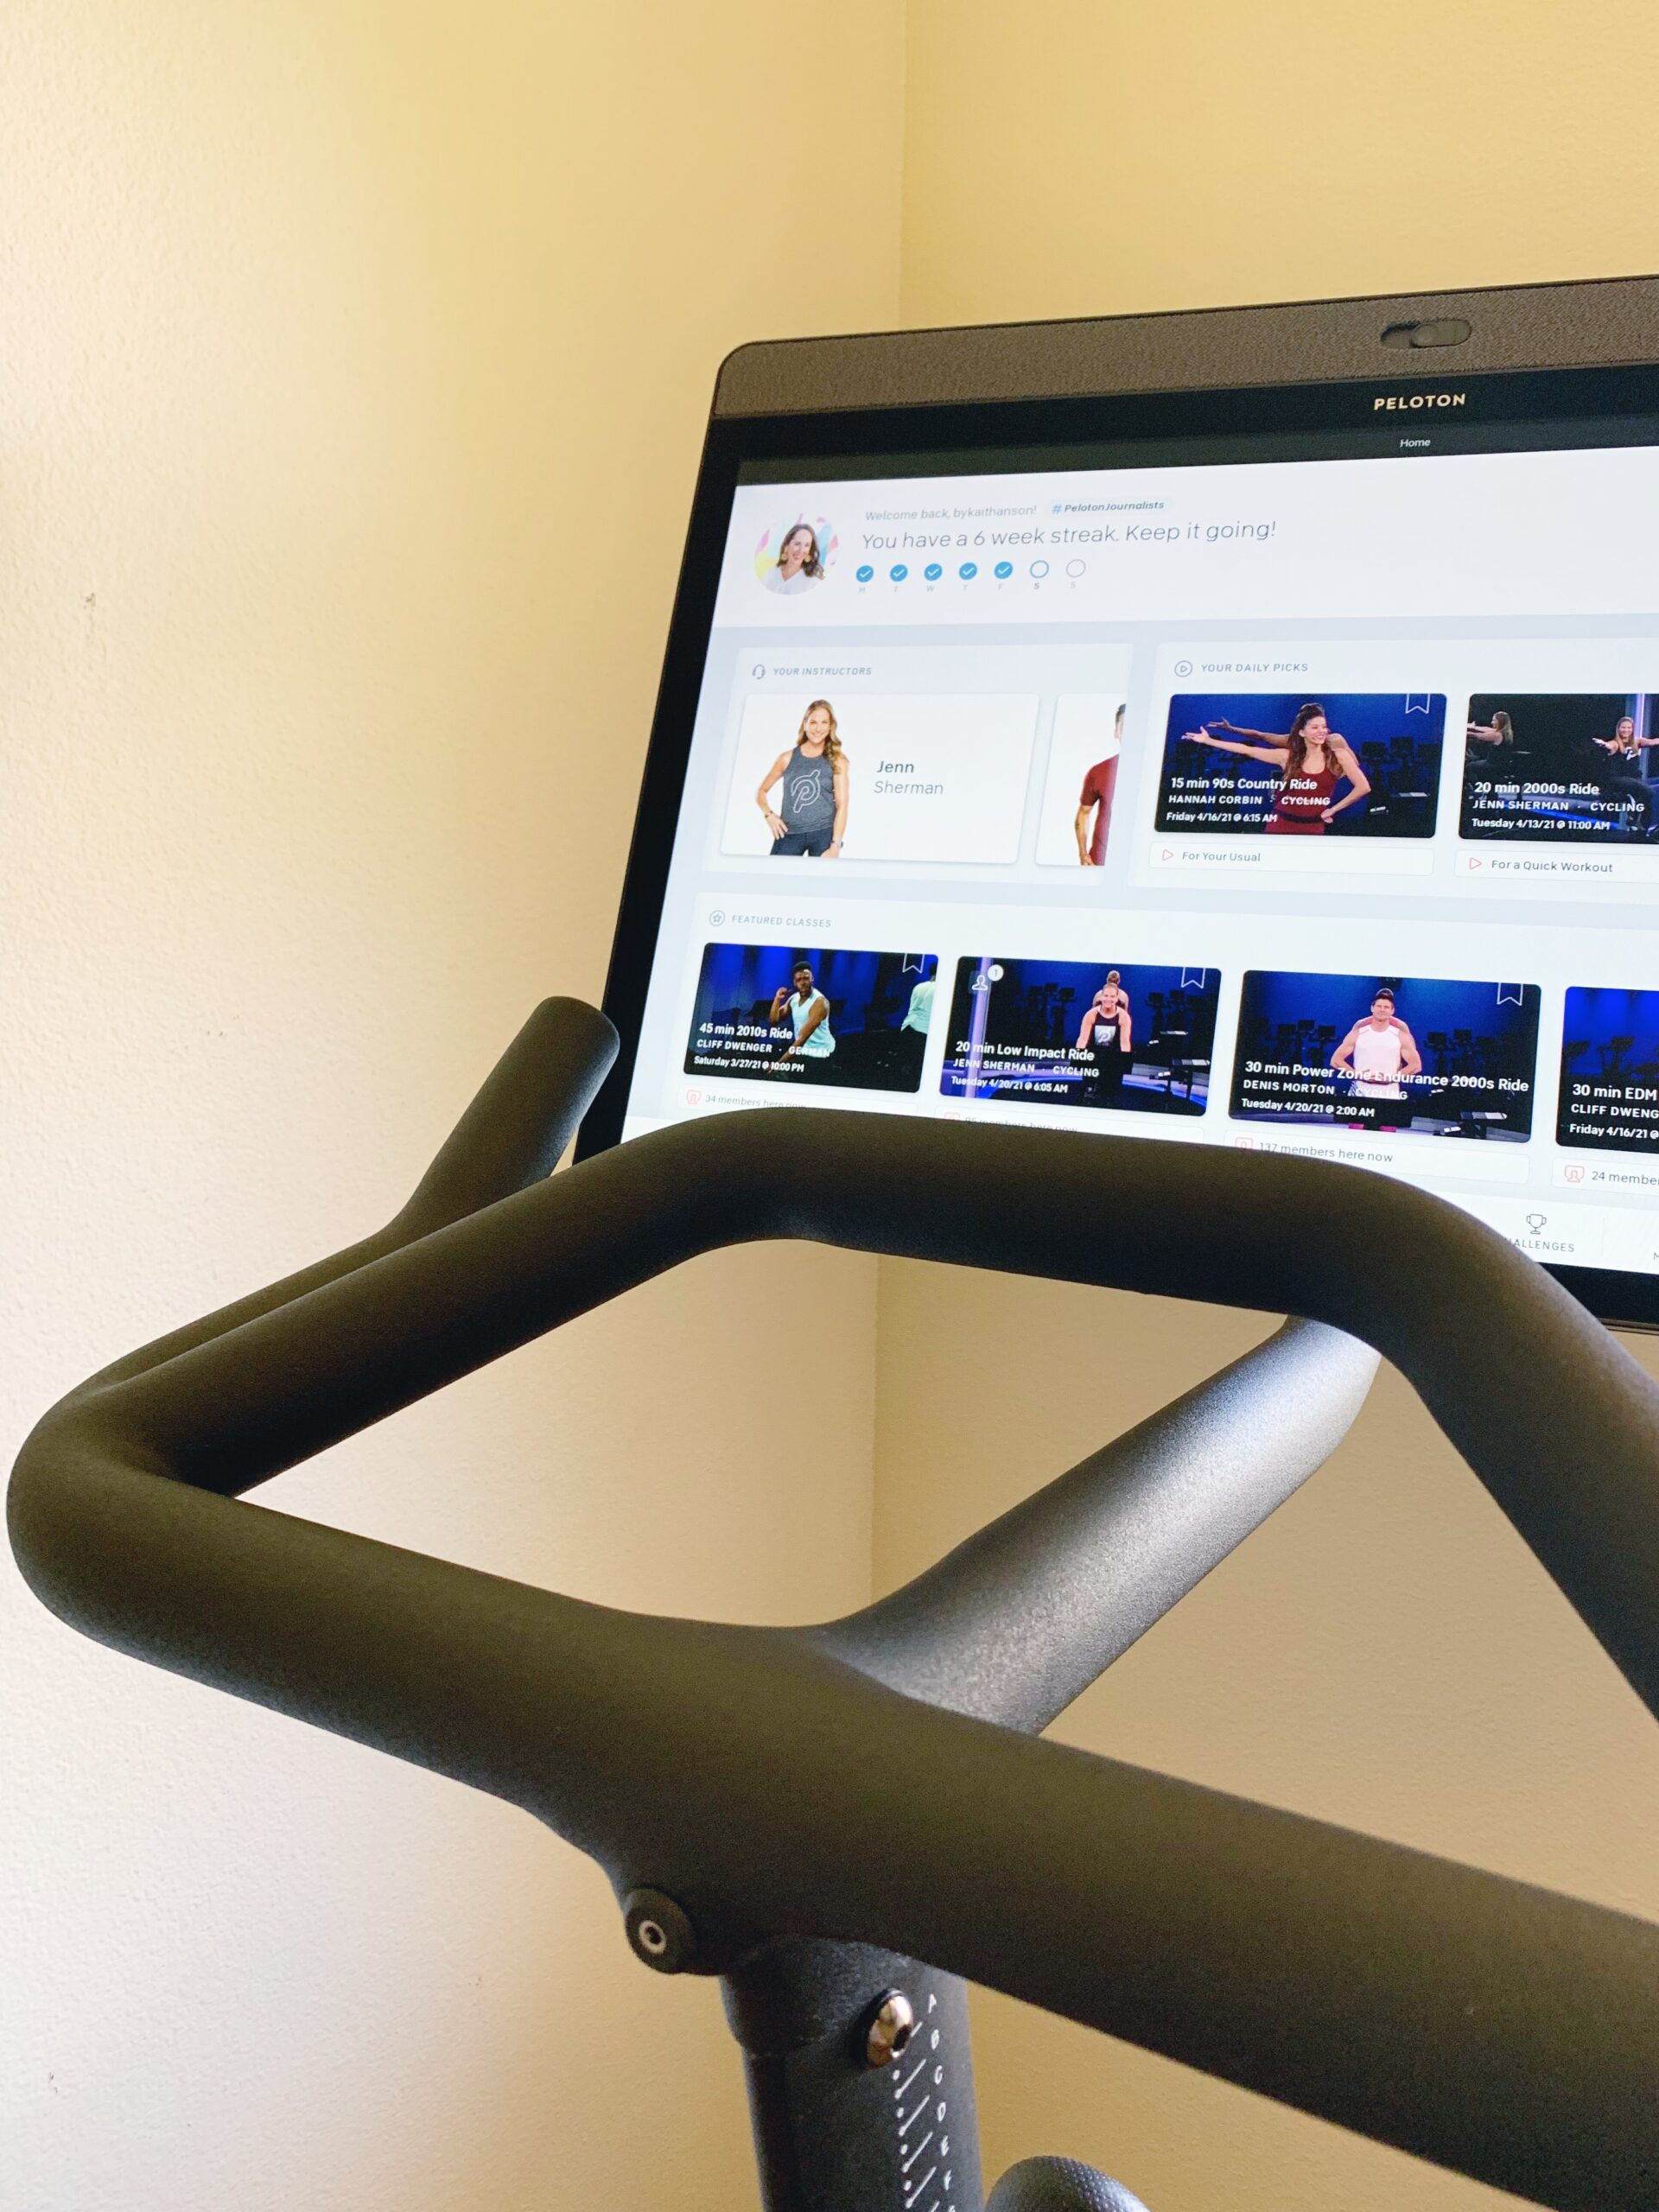 One Month In - My Peloton Bike Review - Considering a Peloton Bike+? I'm sharing my Peloton bike review after one month of use! | Peloton Bike Review | Peloton Bike+ Review | Peloton App Review